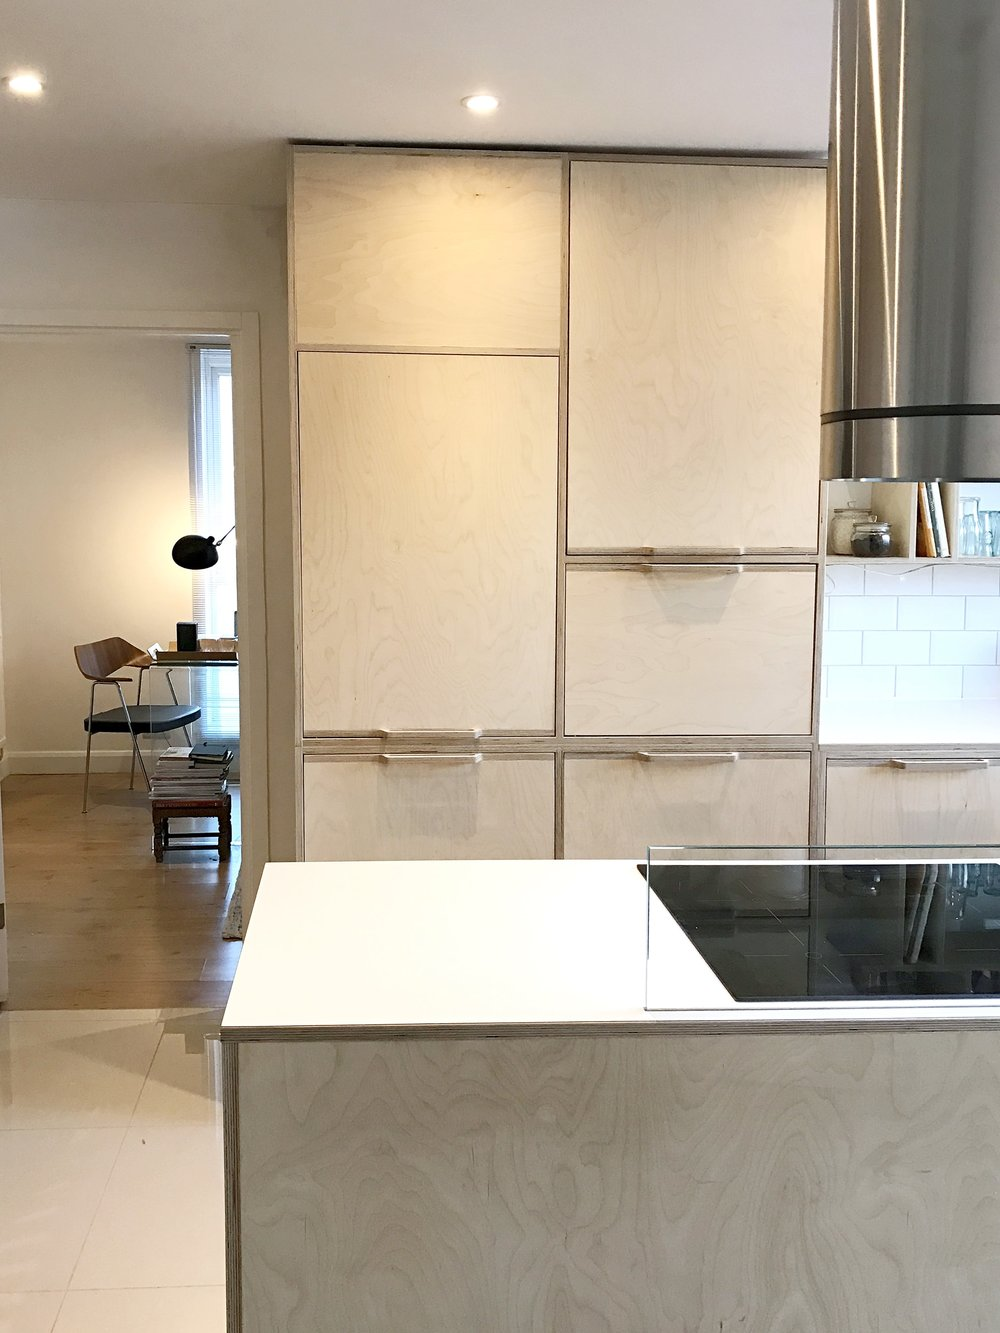 A closer view of the fridge cover and the tall kitchen cabinets, with a sneak peek into the couple's elegant living room.